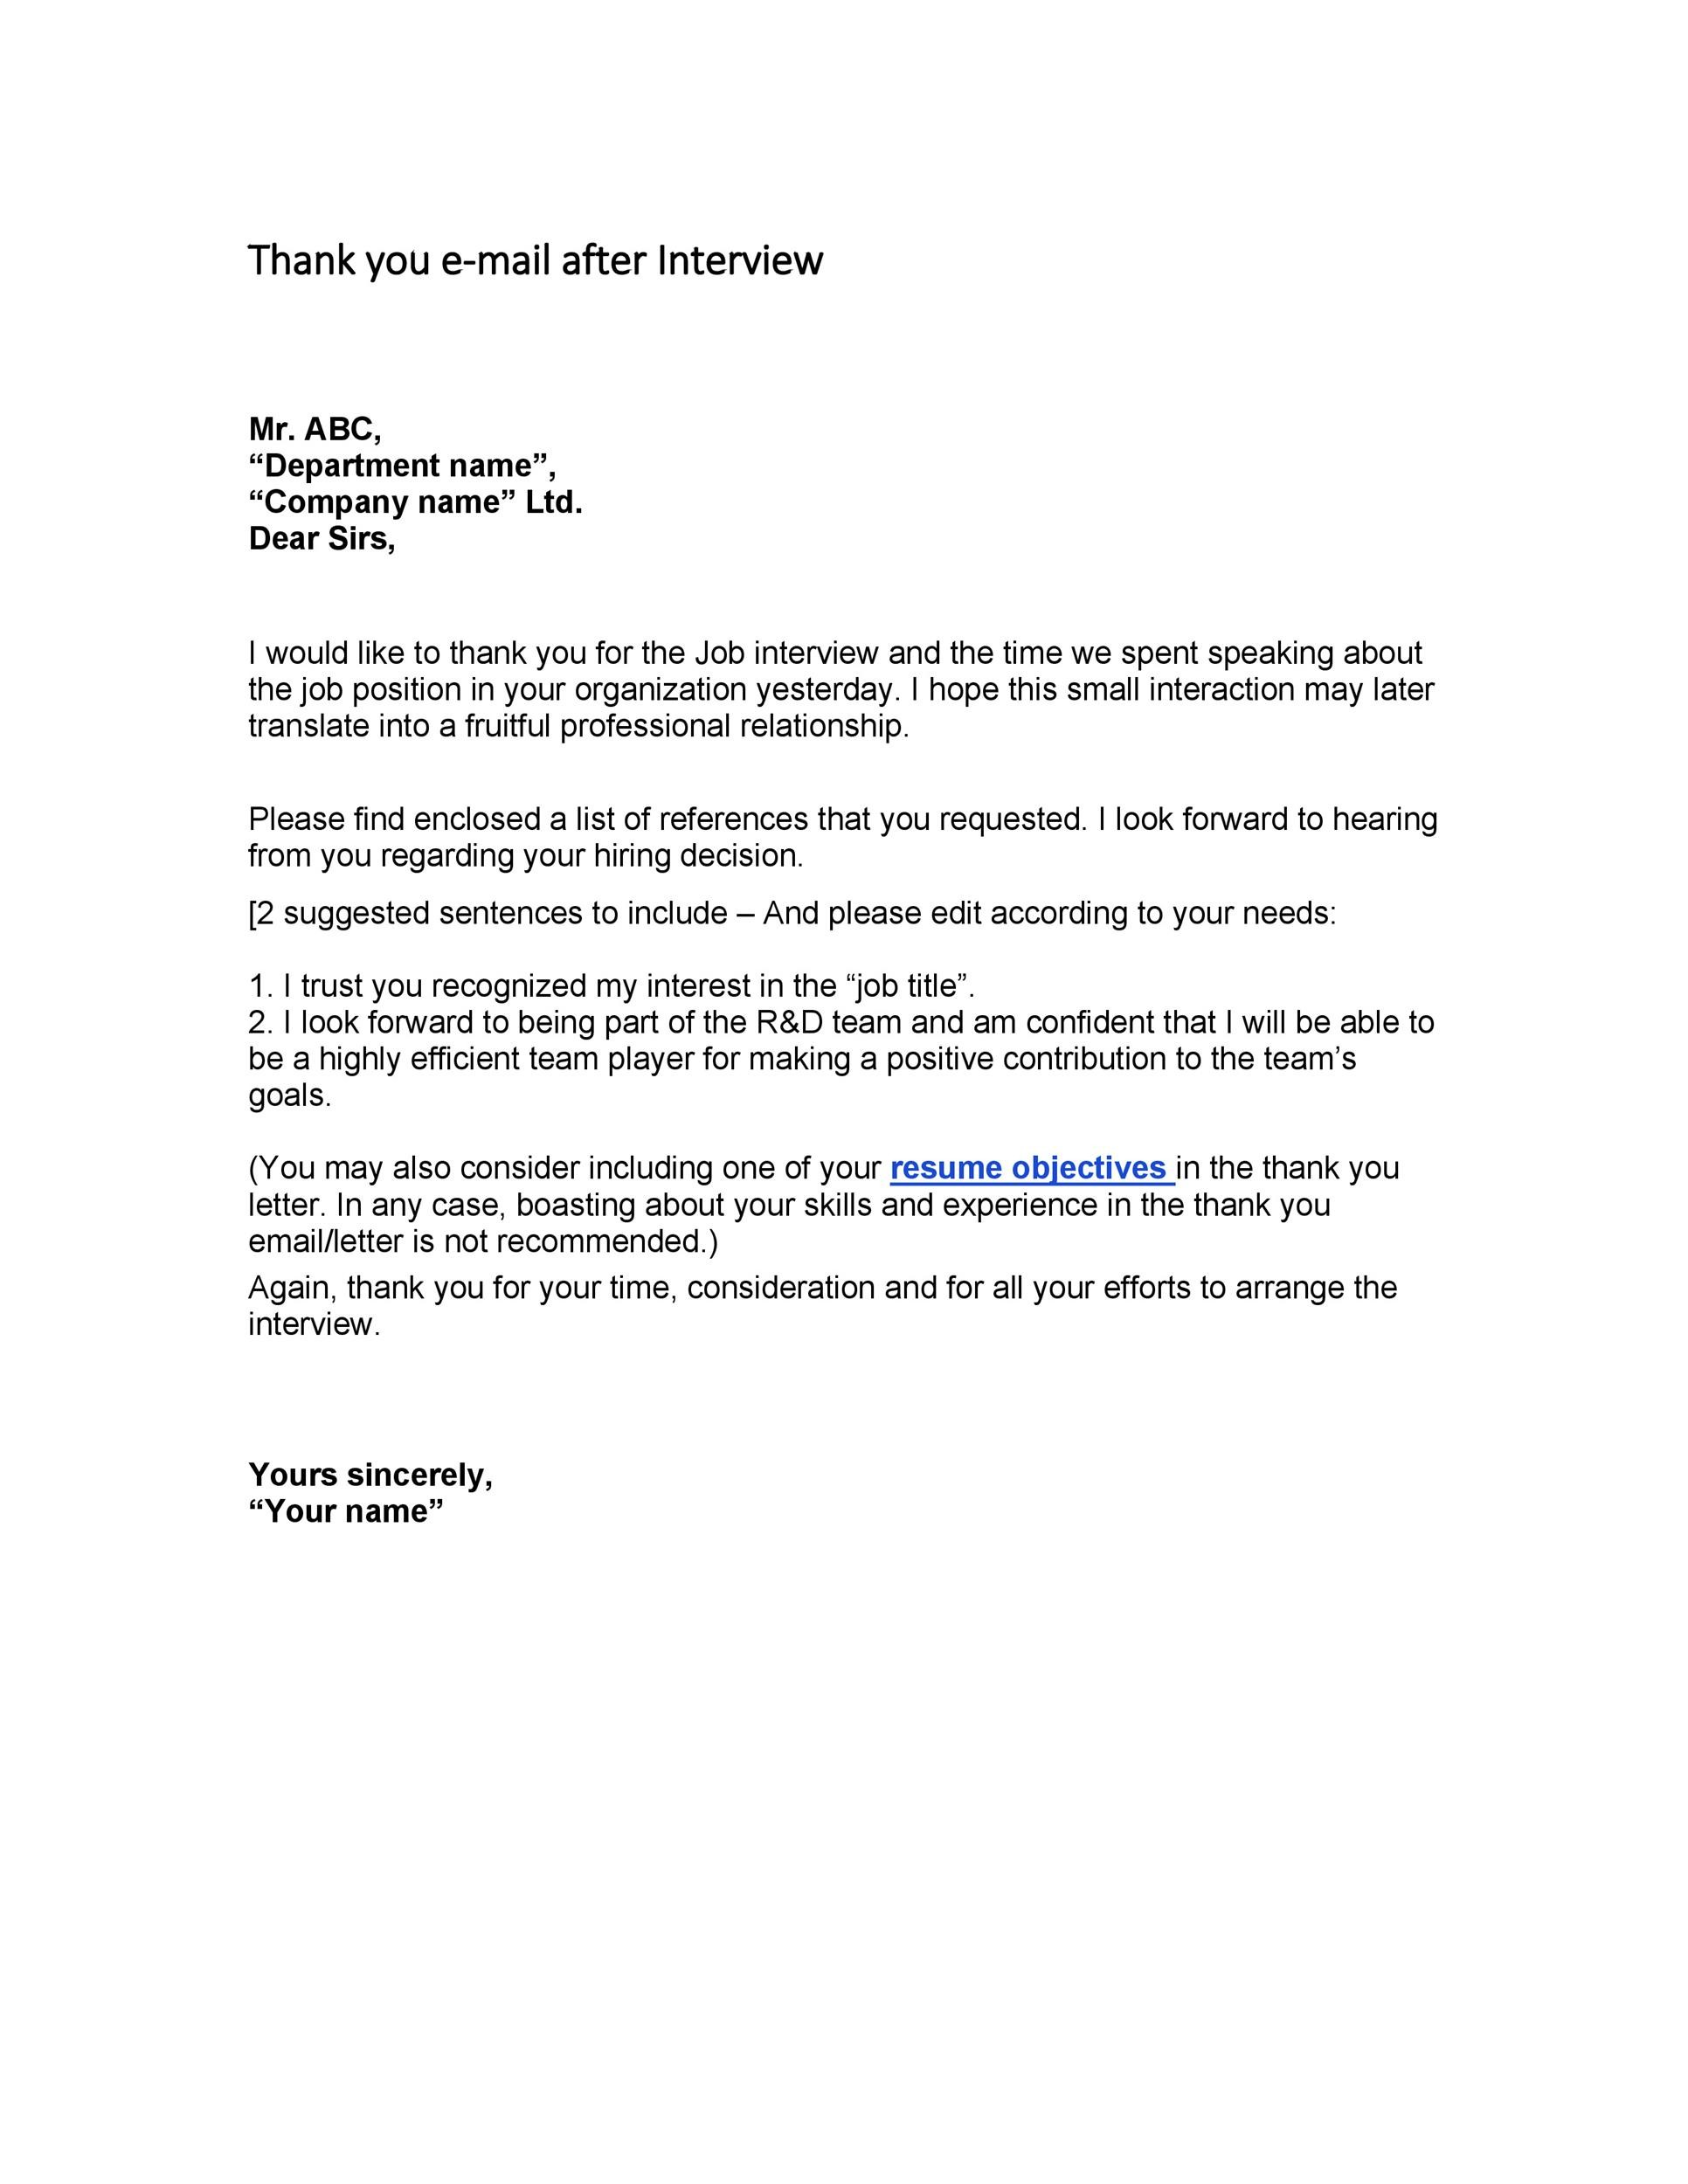 Thank You Email After Interview Templates  Template Lab